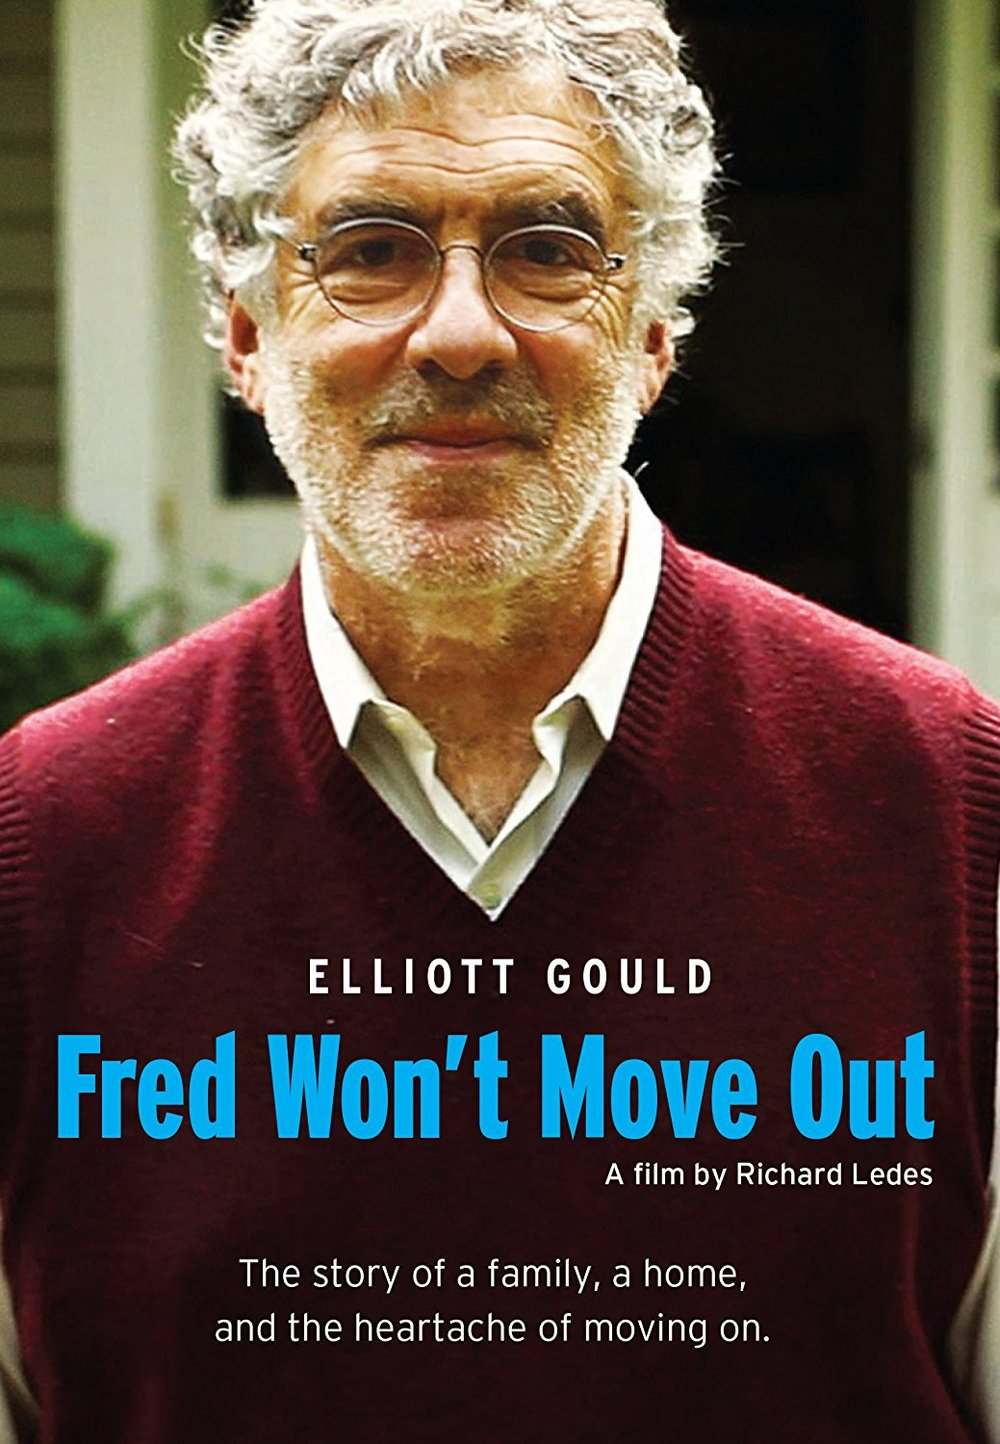 Fred Wont Move Out Film By Richard Ledes.jpg